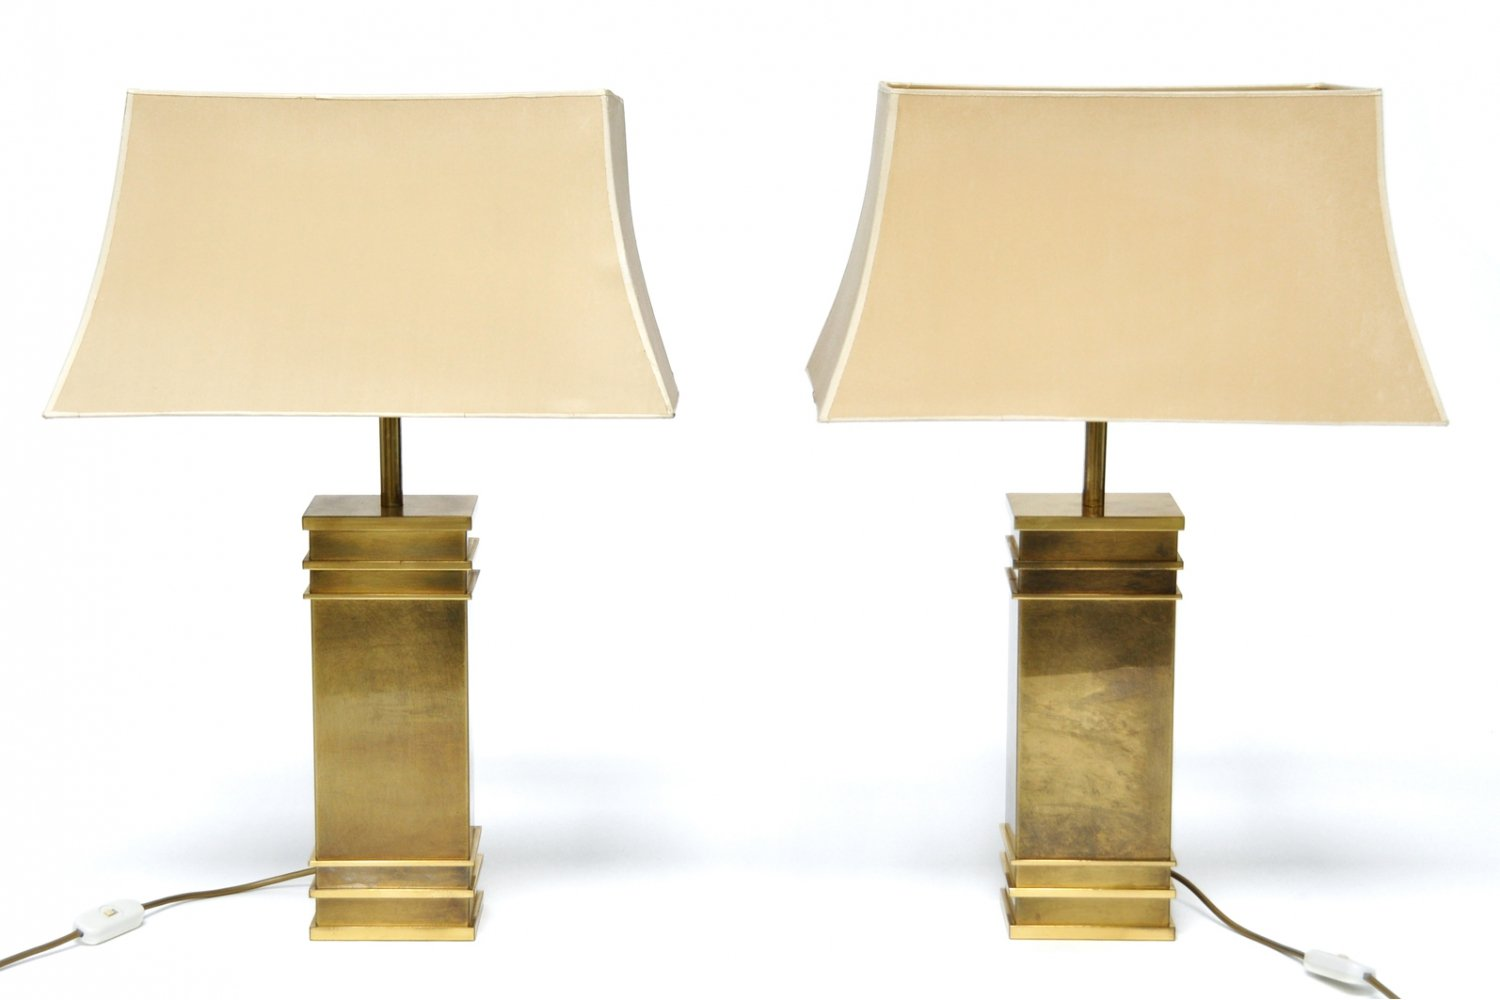 Pair of Vintage Hollywood Regency Brass Lamps, 1970s